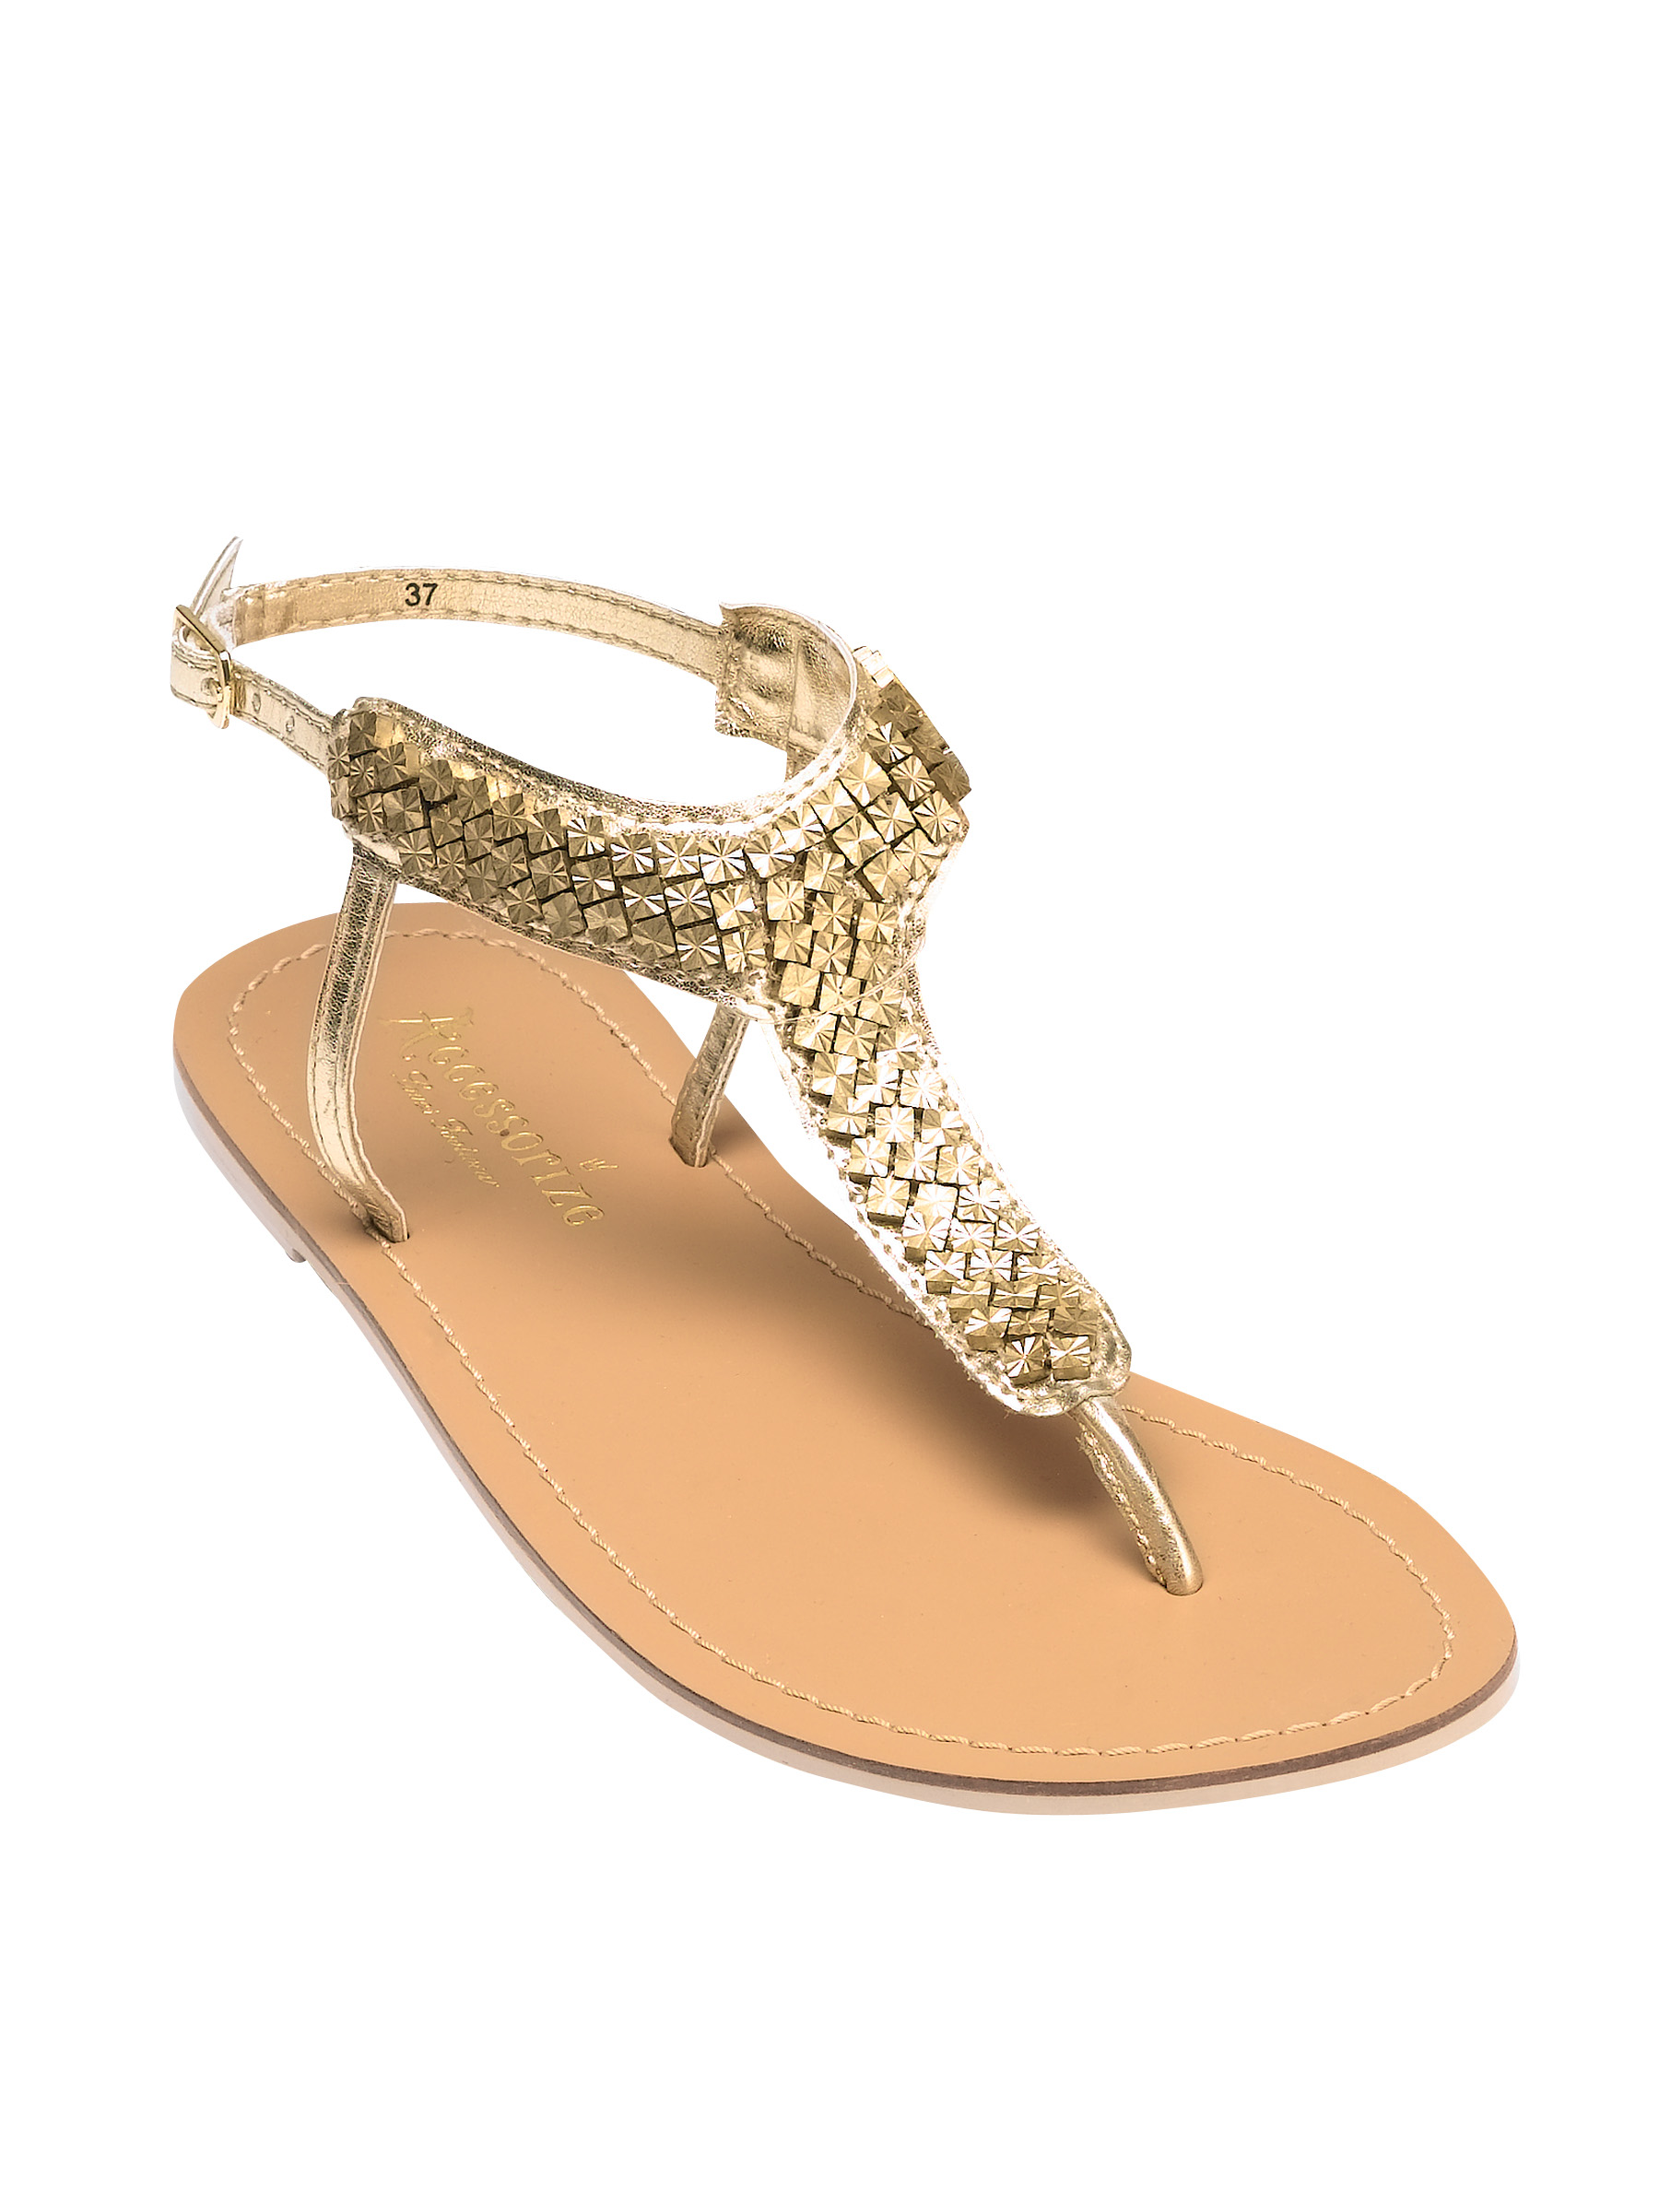 sandals accessorize 163 30 astylishliving